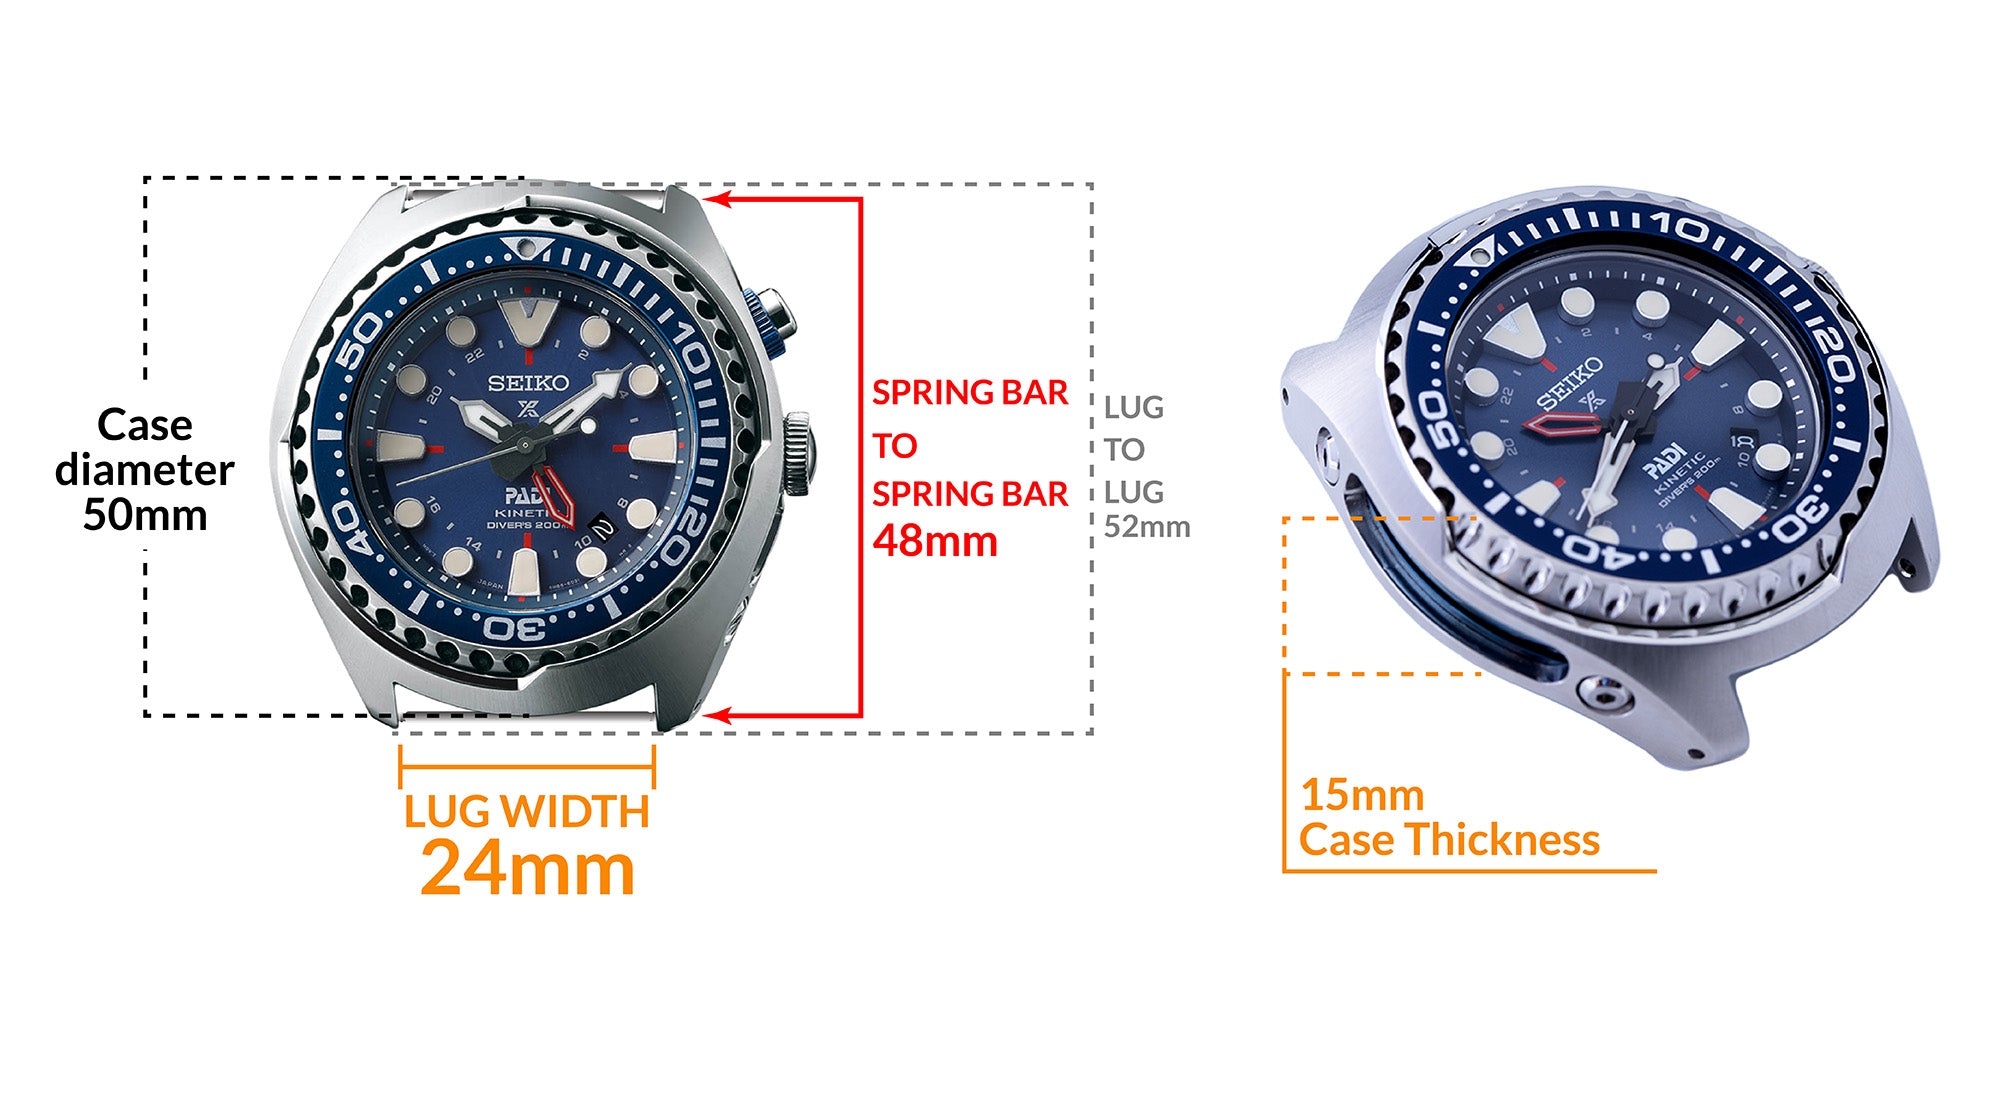 Seiko  Kinetic PADI SUN065 Watch - Details watch case measurement and dimensions